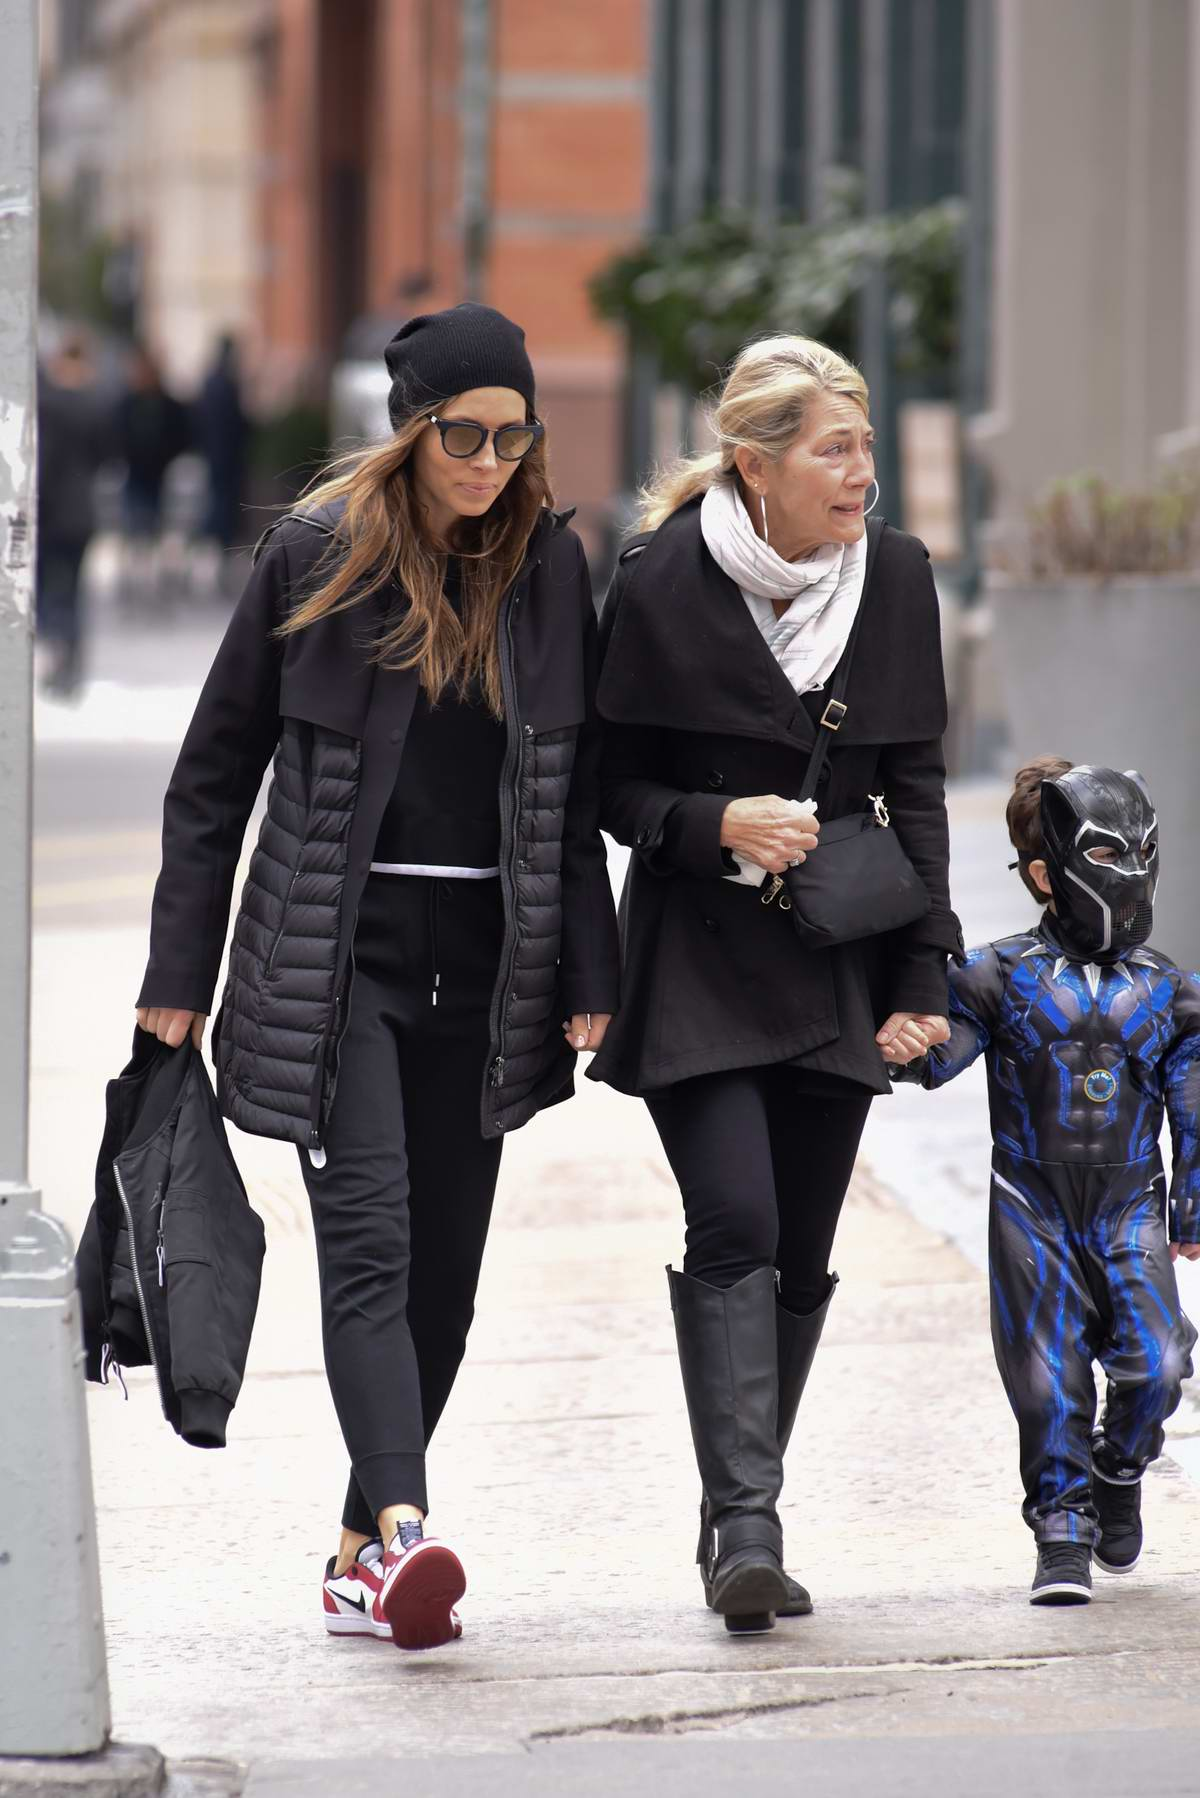 Jessica Biel sports all black as she steps out with her son and mother Kimberly Biel in New York City